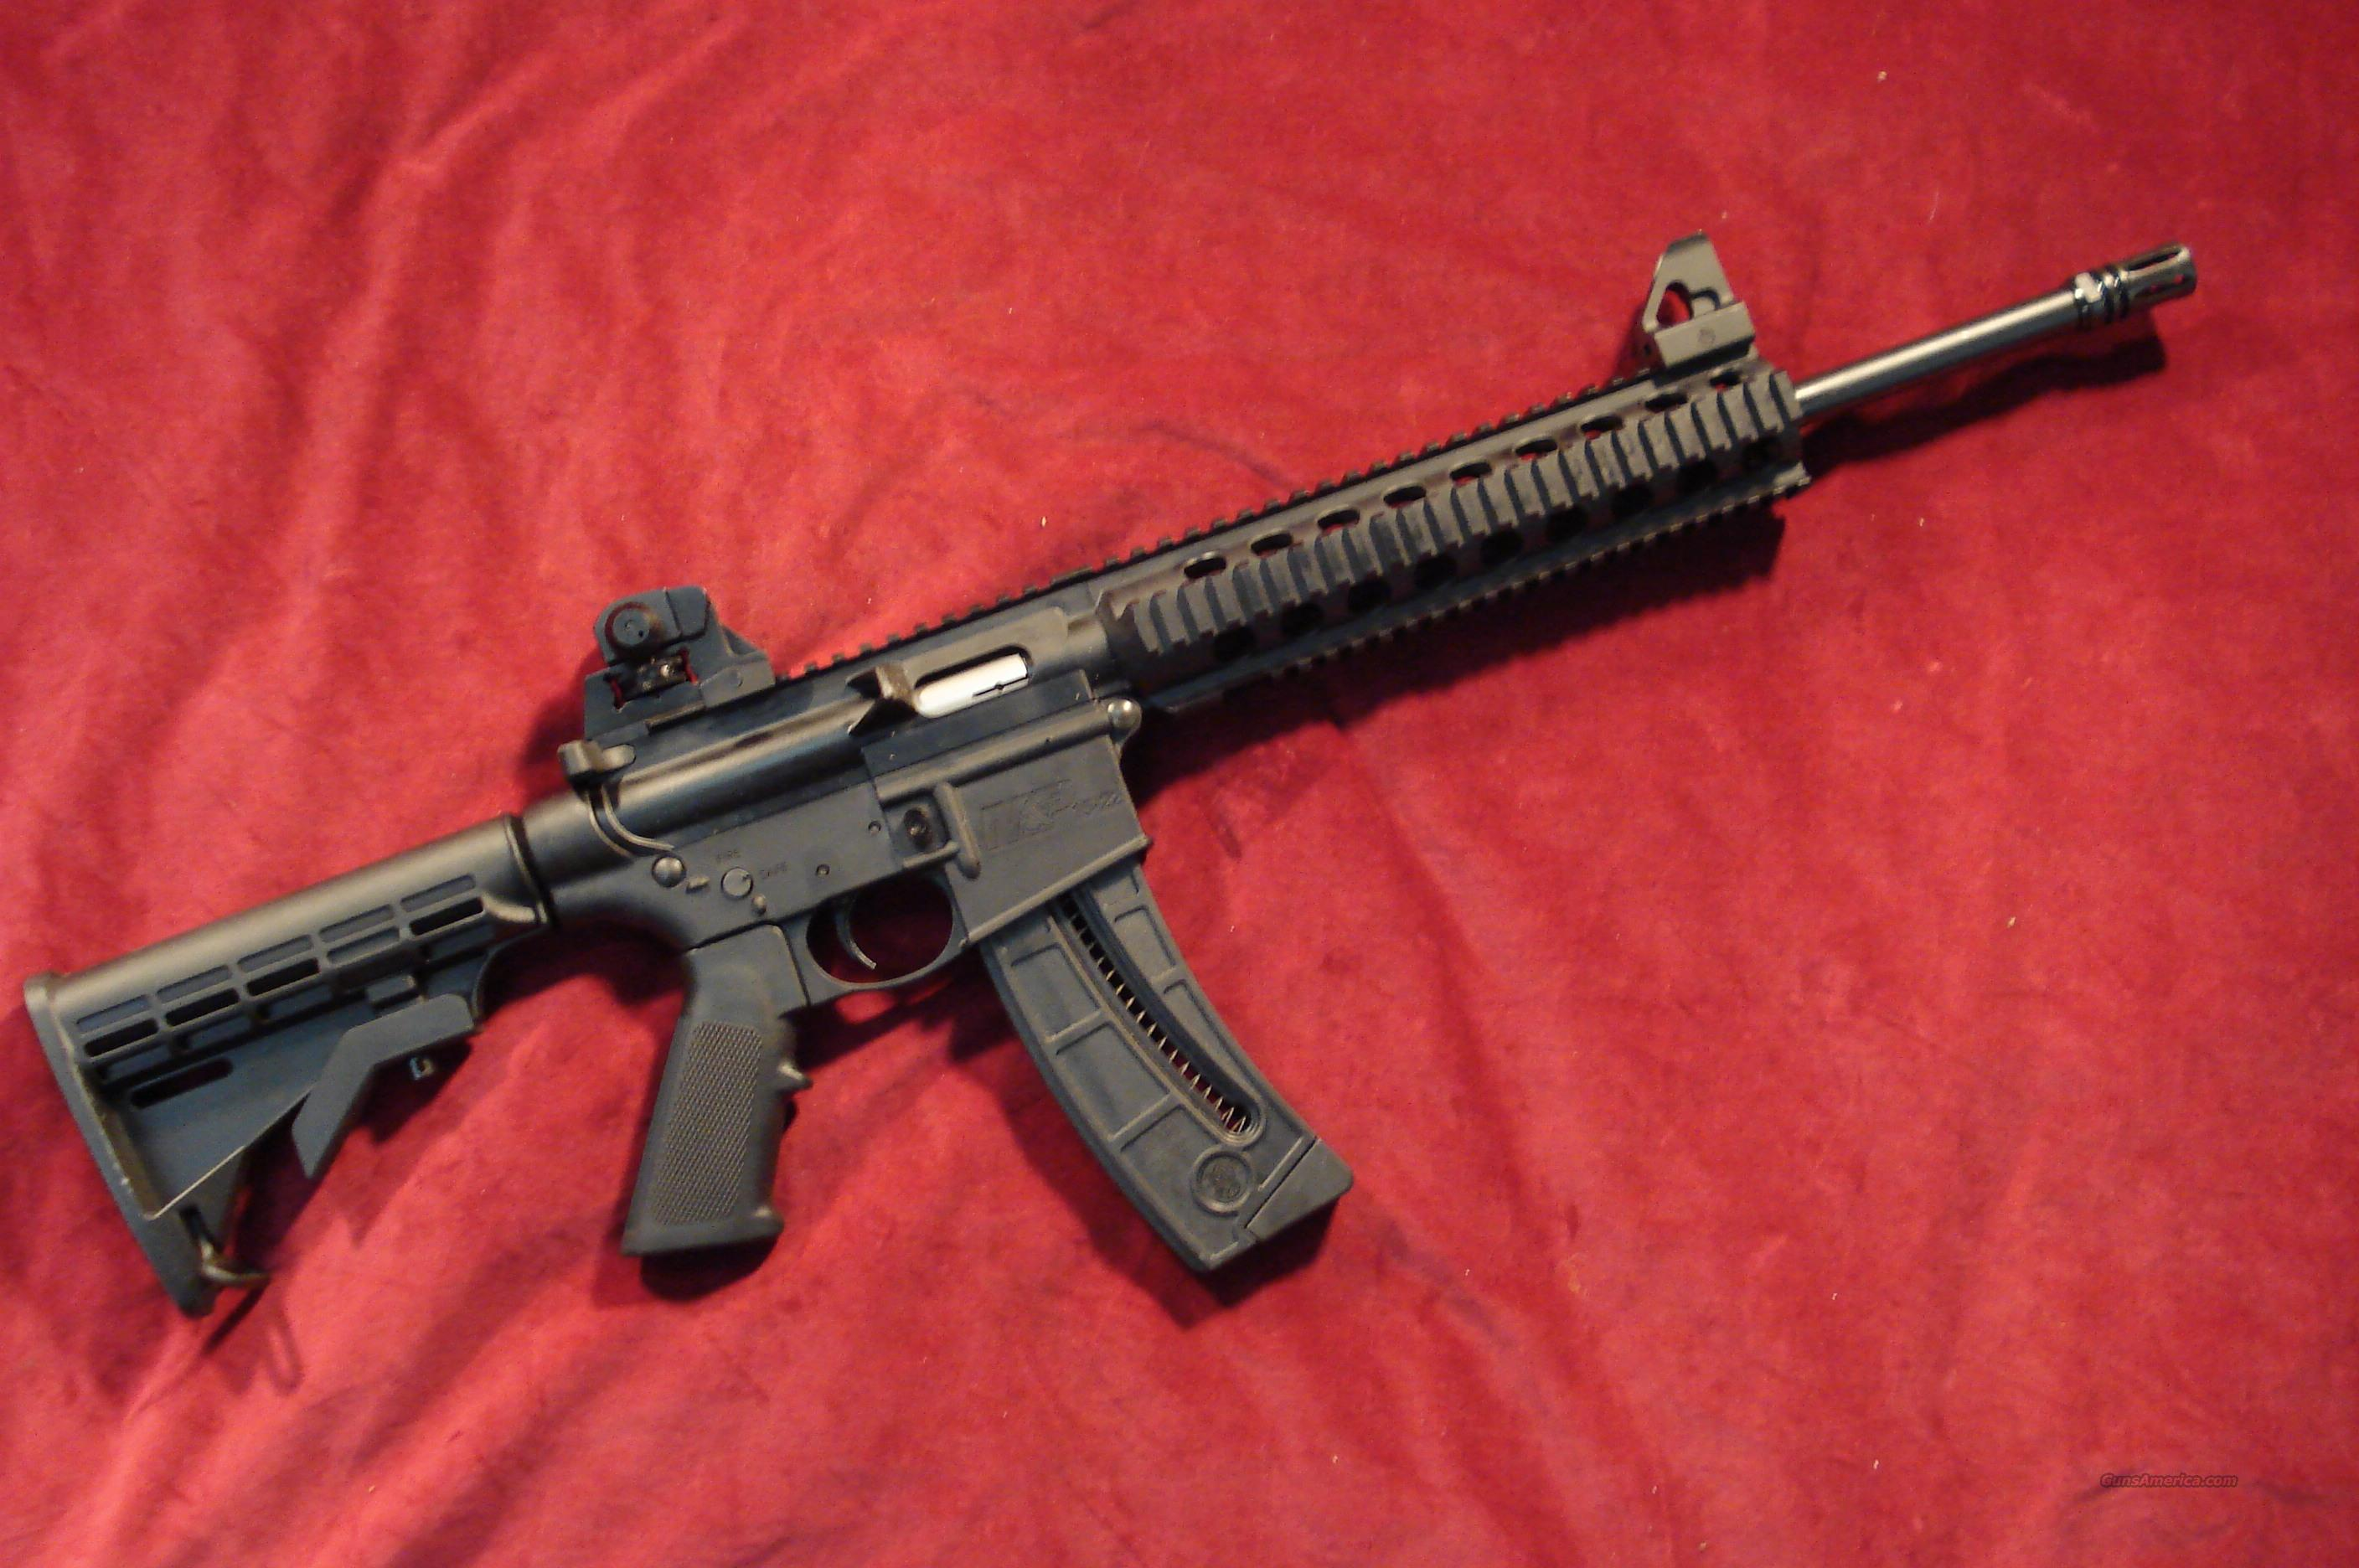 SMITH & WESSON M&P15-22 WITH COMP. NEW   Guns > Rifles > Smith & Wesson Rifles > M&P